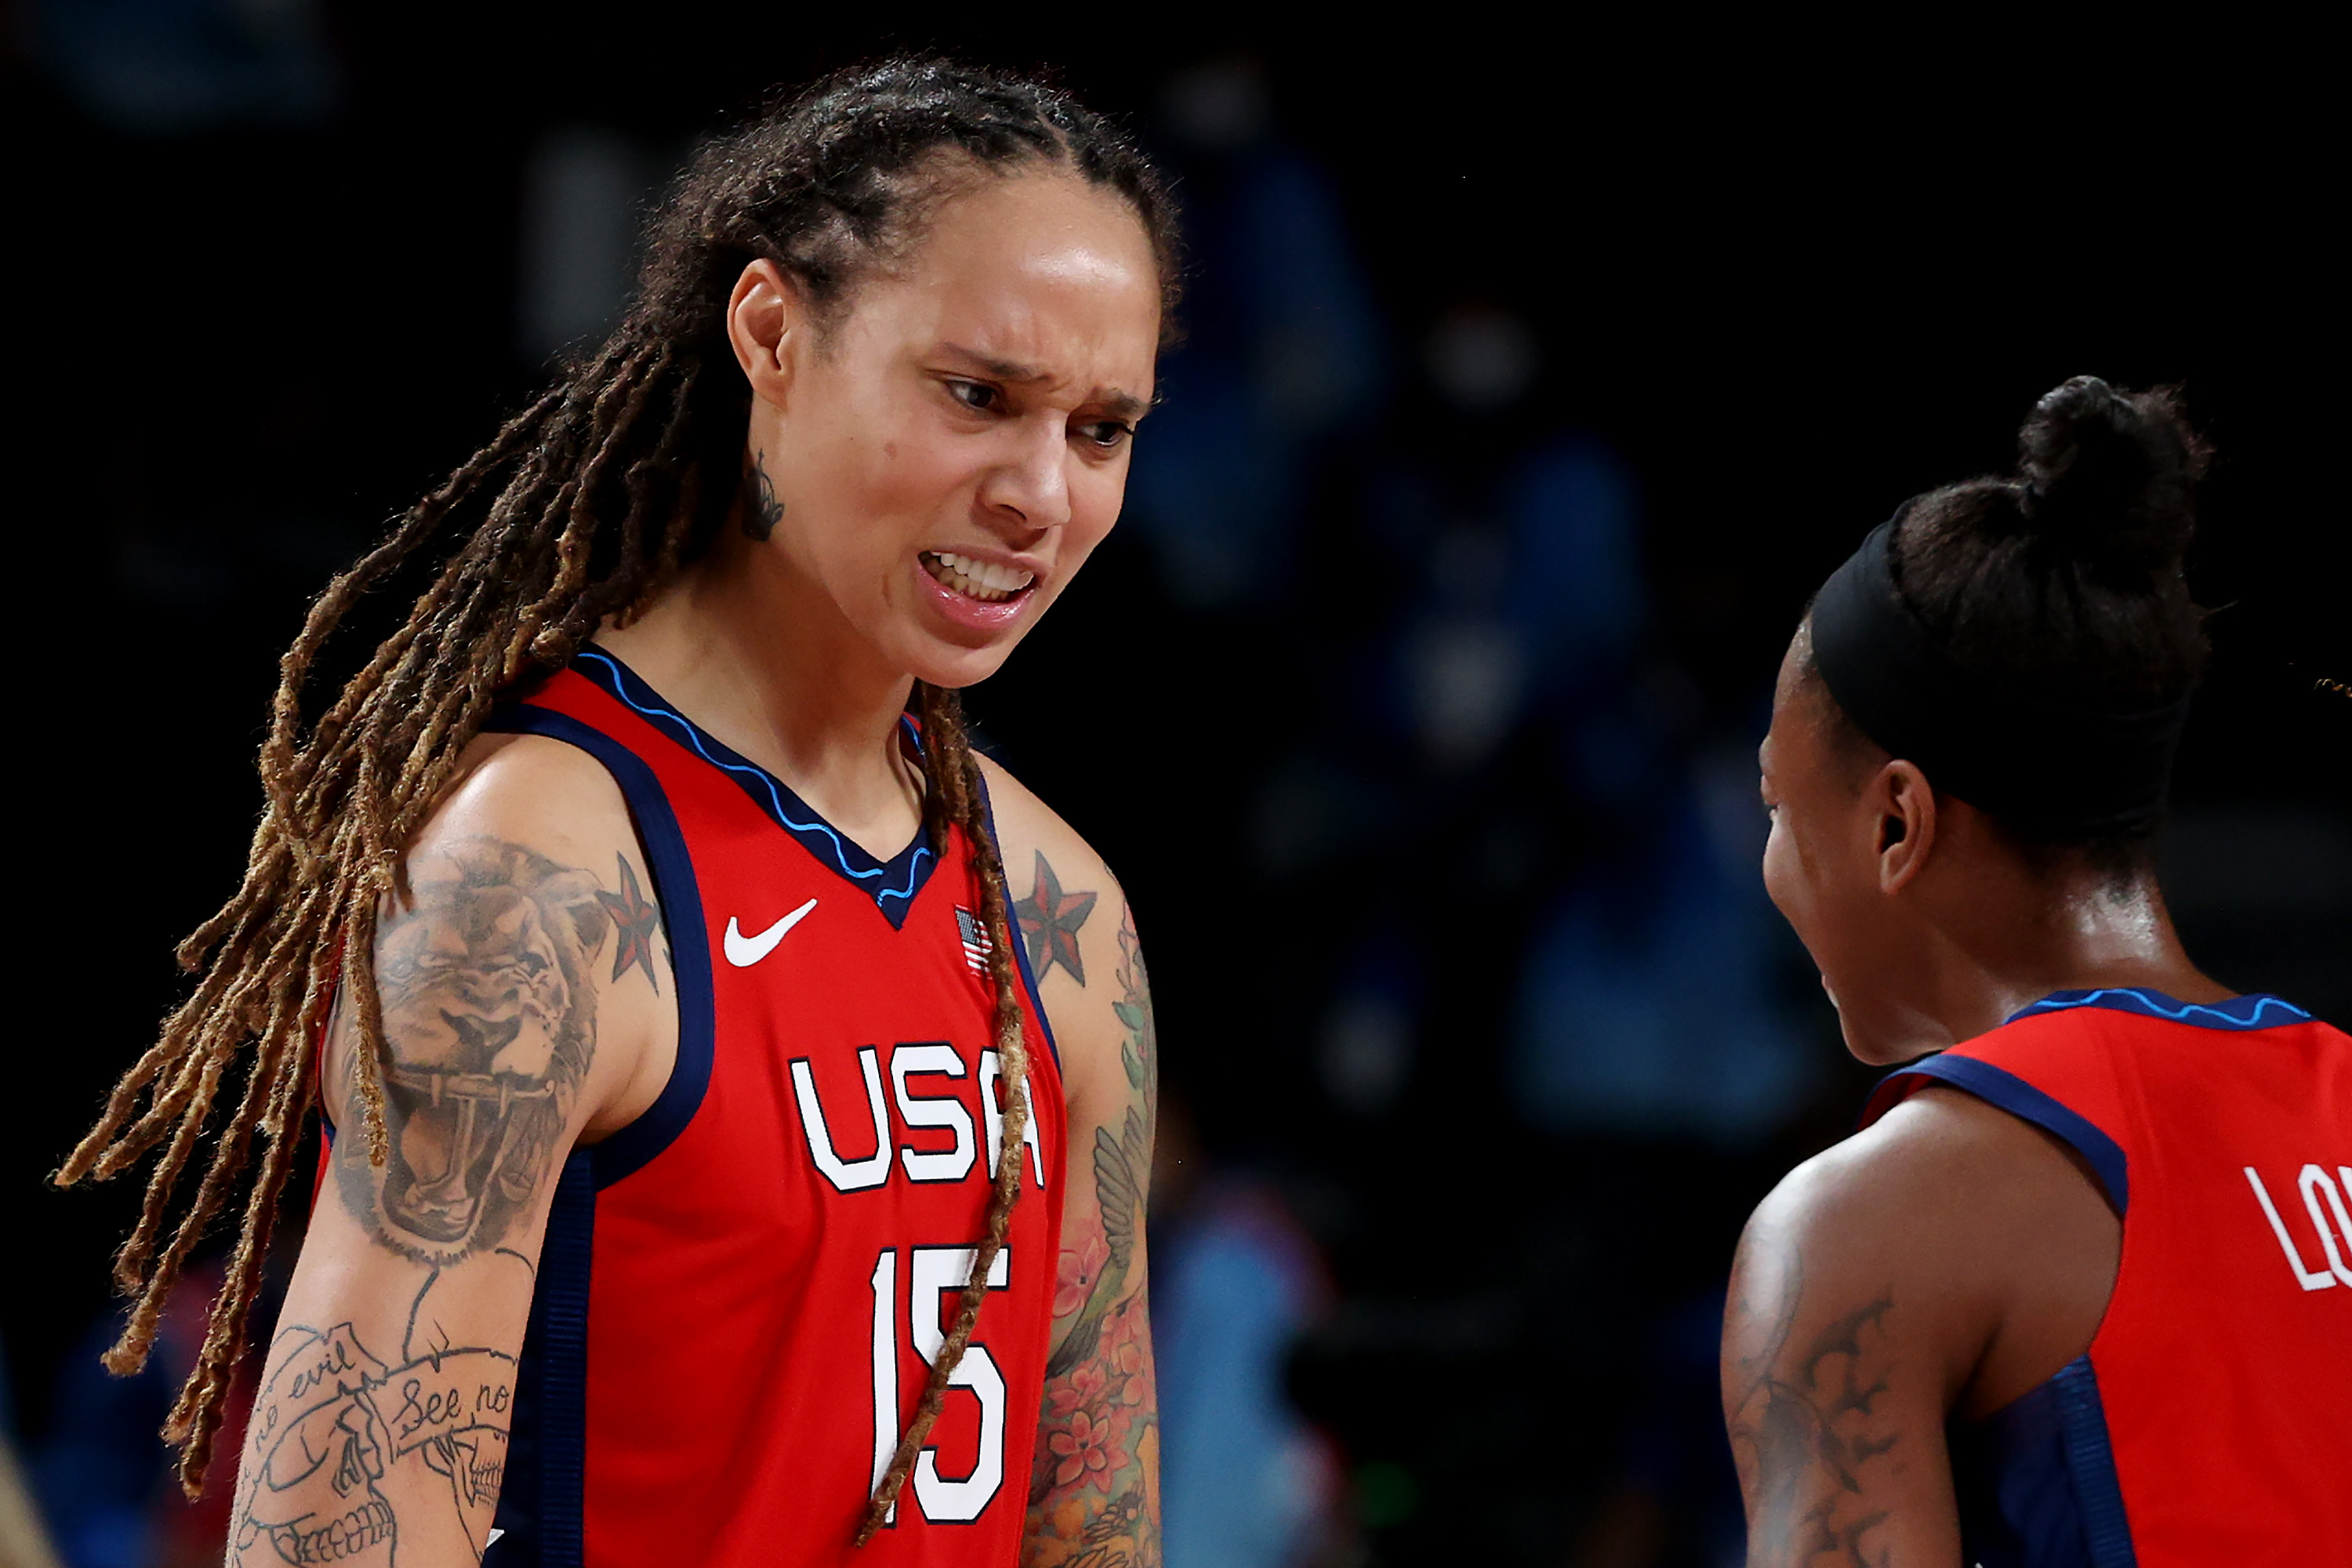 Brittney Griner #15 and Jewell Loyd #4 of Team United States celebrate a win against Team Australia during a Women's Basketball Quarterfinals game on day twelve of the Tokyo 2020 Olympic Games at Saitama Super Arena on August 04, 2021 in Saitama, Japan.